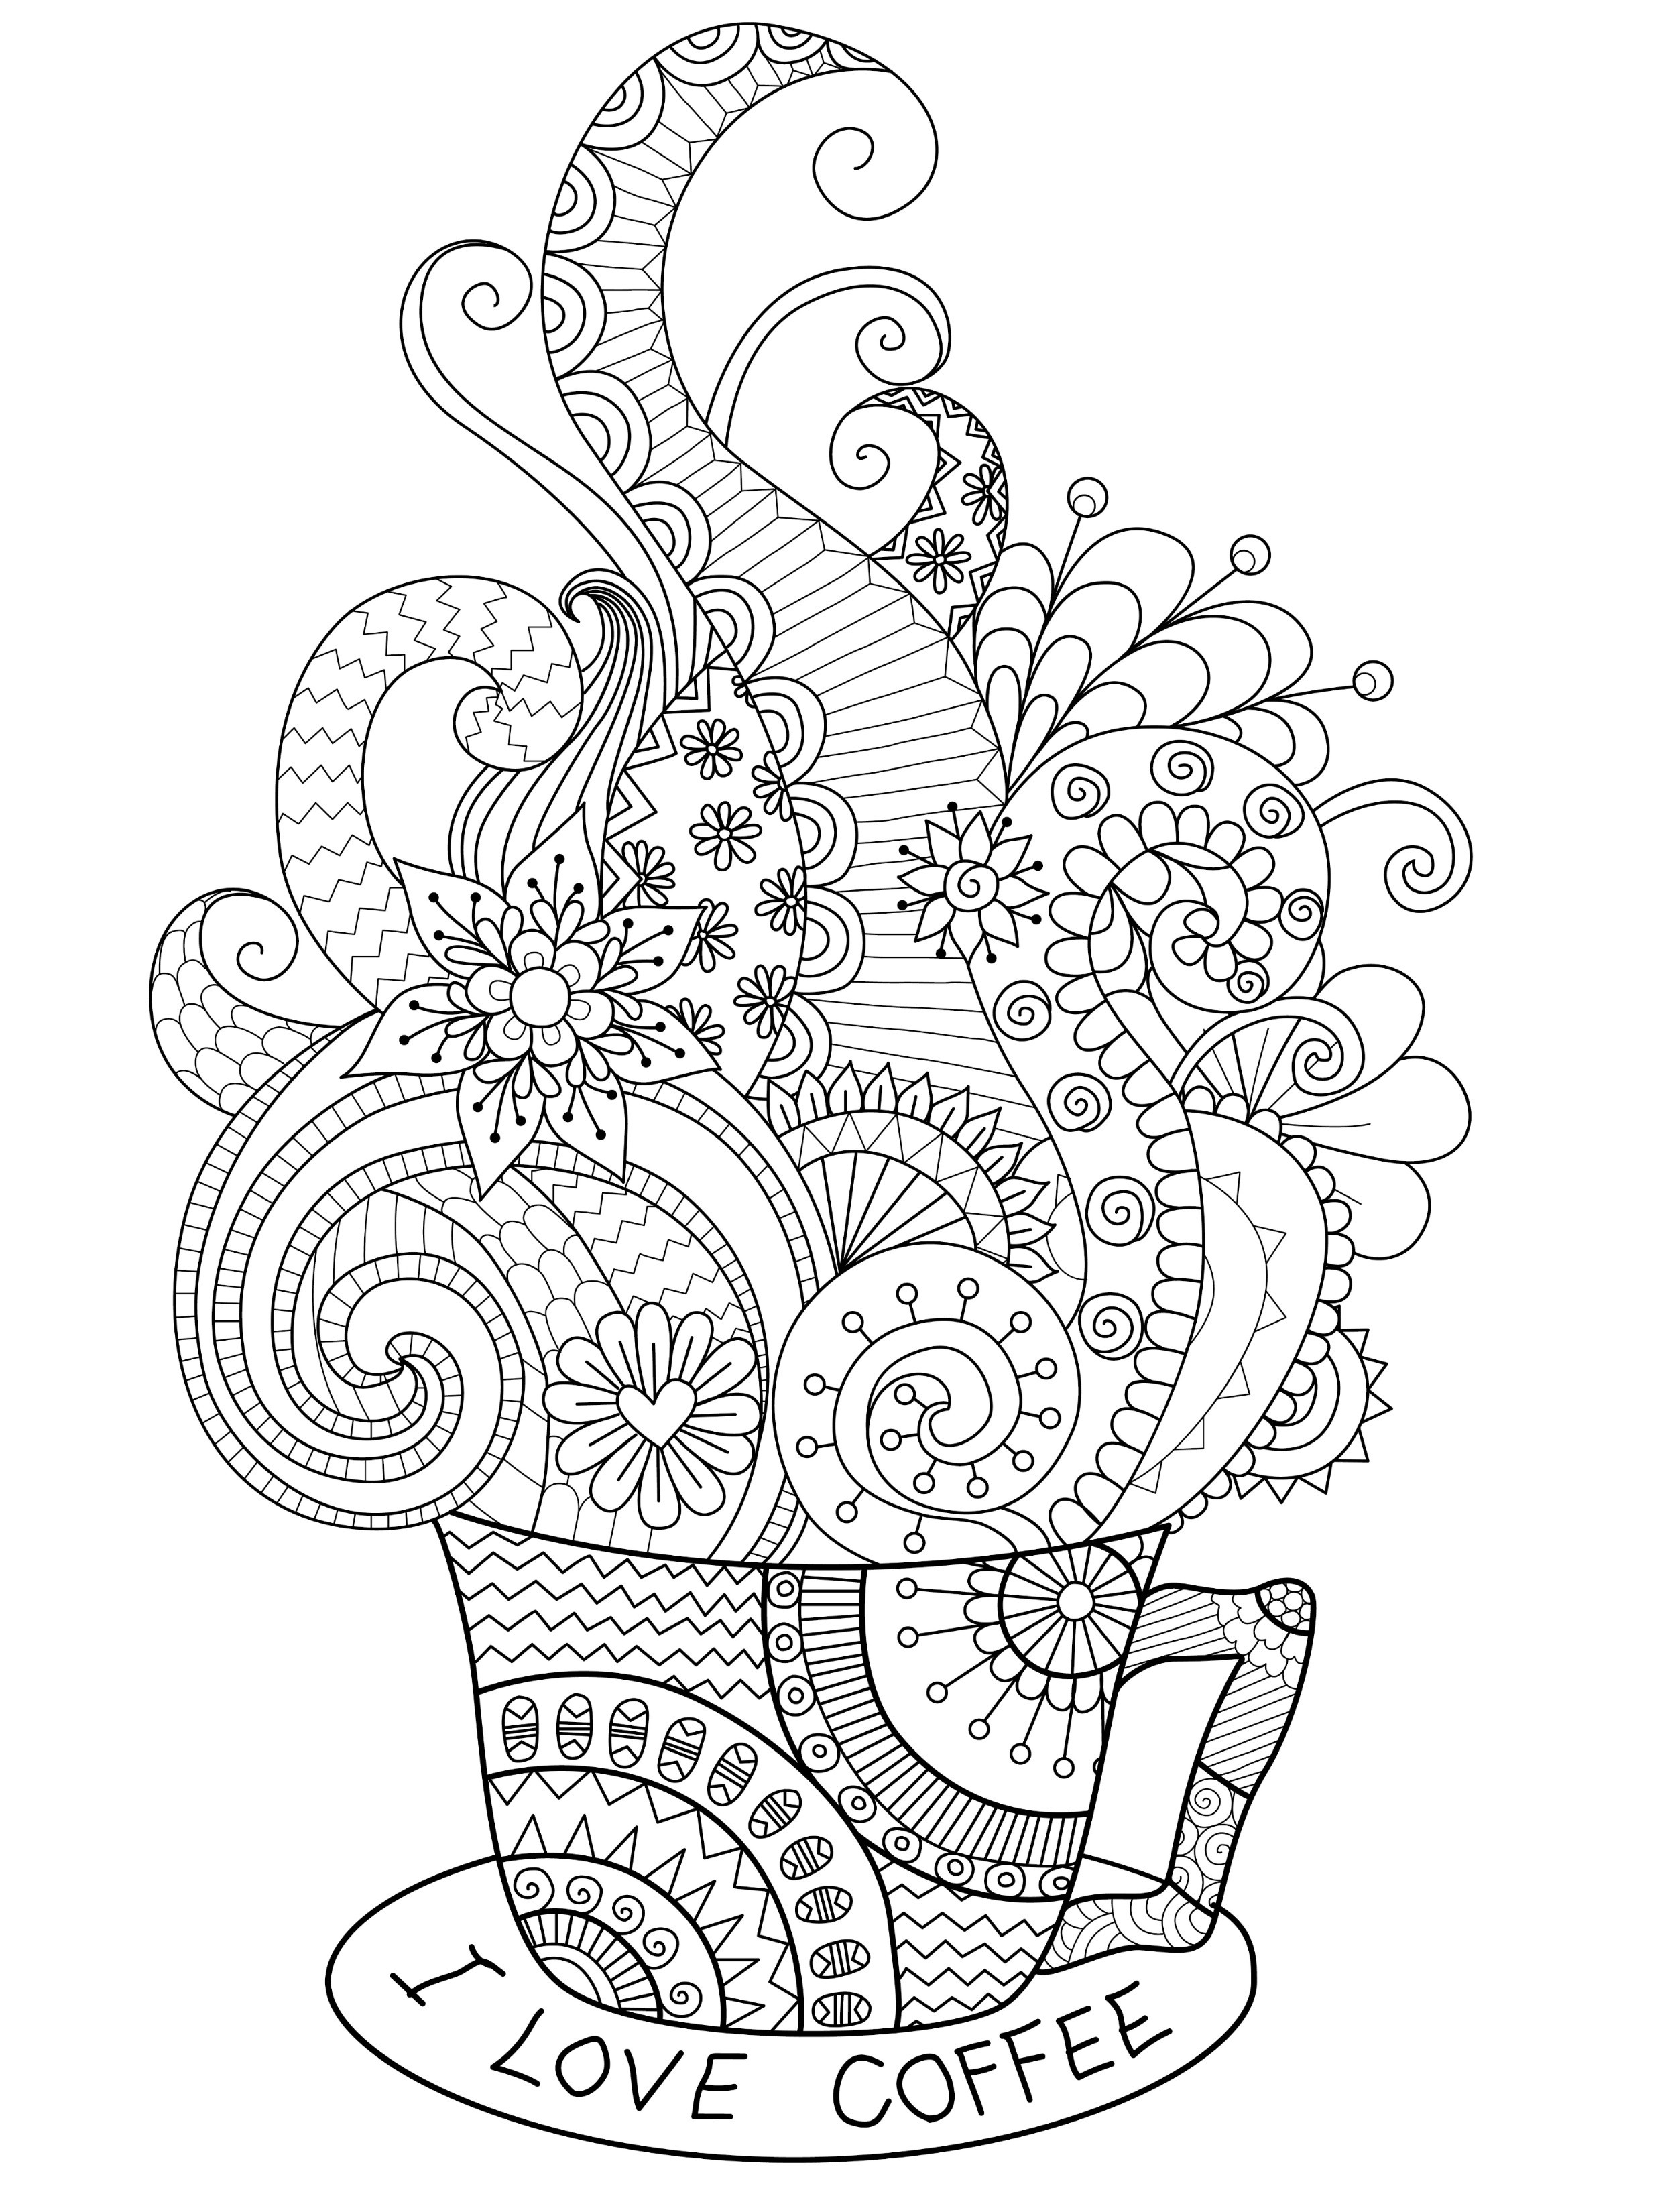 Free Printable I Love You Coloring Pages For Adults  20 Gorgeous Free Printable Adult Coloring Pages Page 10